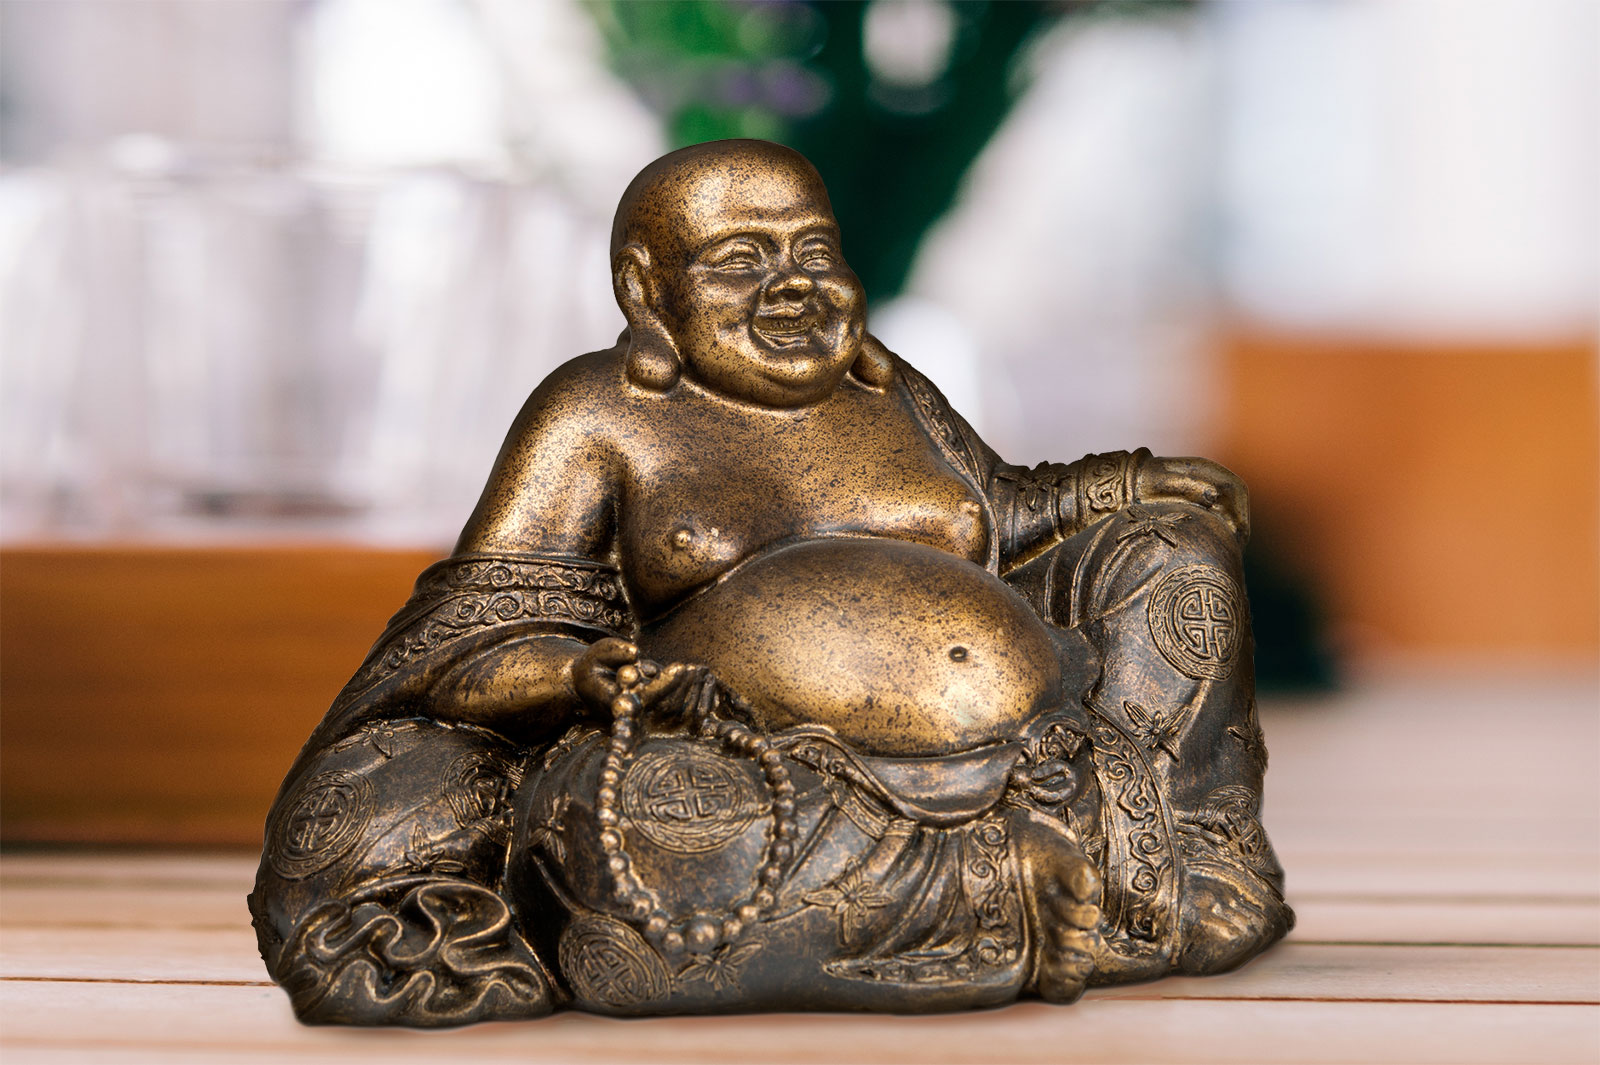 Meaning Of The Laughing Buddha Statue In Feng Shui Lovetoknow